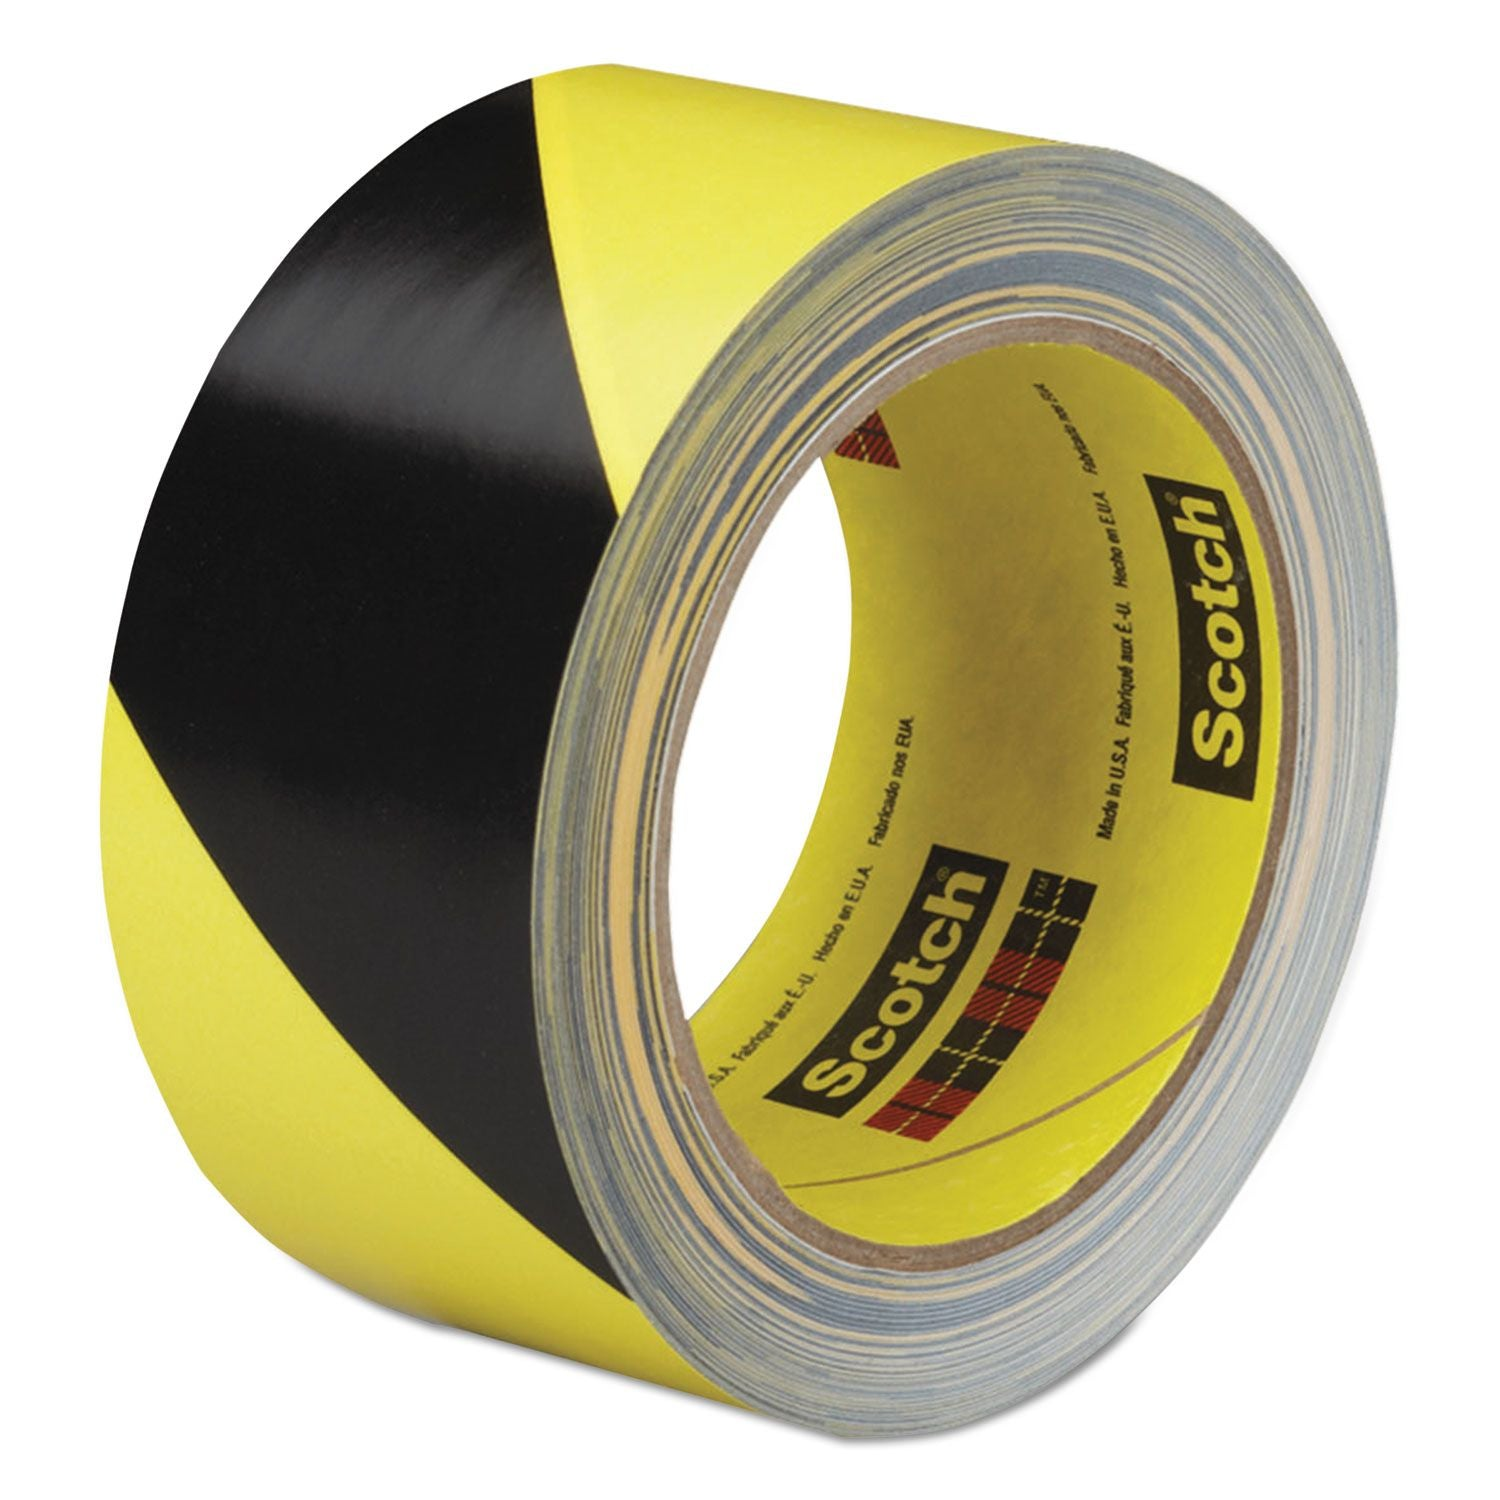 "3M Safety Marking Hazard Tape 5702 Black Yellow Stripe 3"" in x 36 yd Case of 12 Rolls 5.4 mil 70-0060-0835-6"